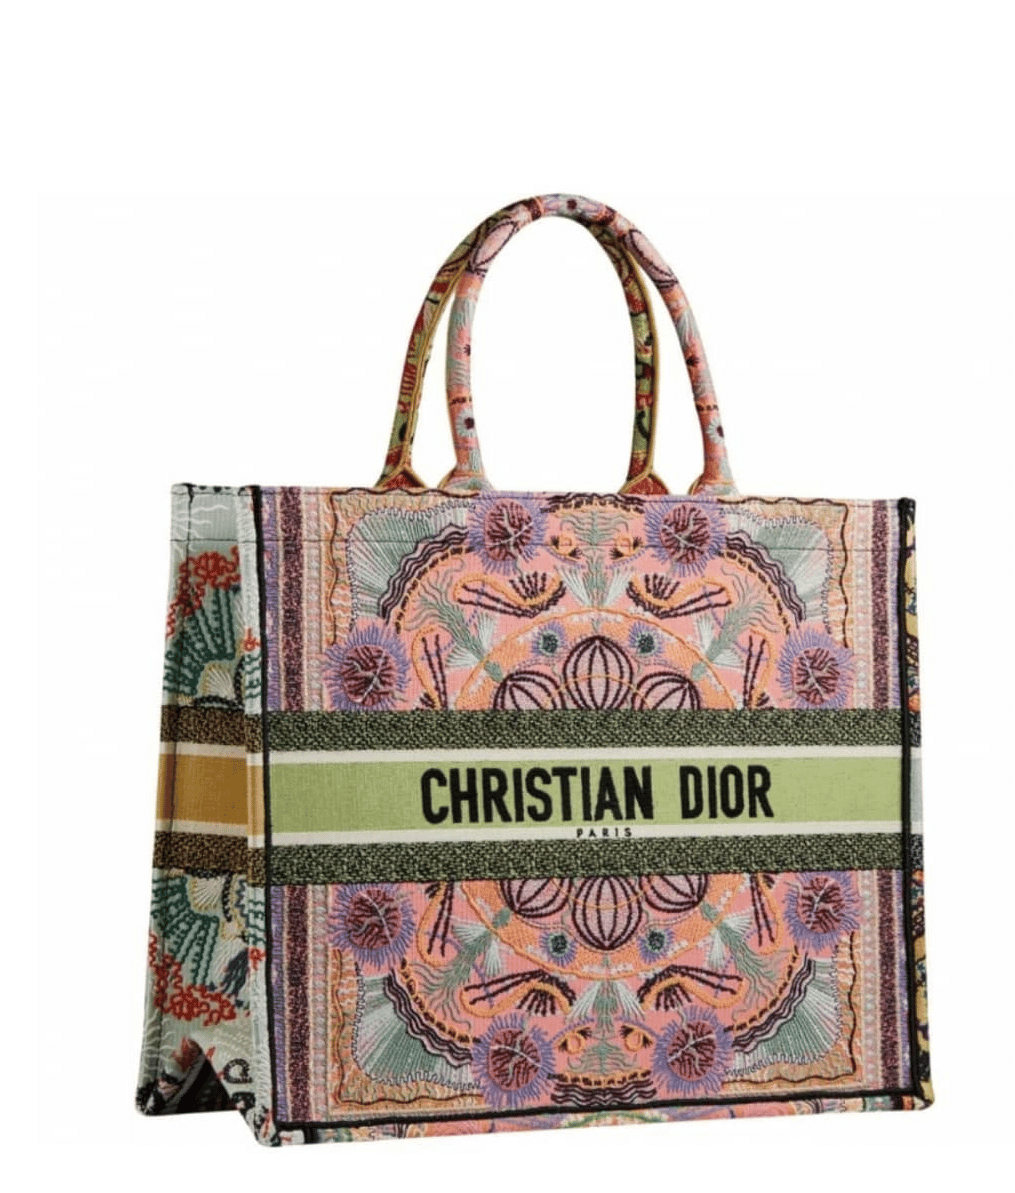 Dior Cruise 2021 Bag Collection featuring The Leather Vanity Bag | Spotted Fashion